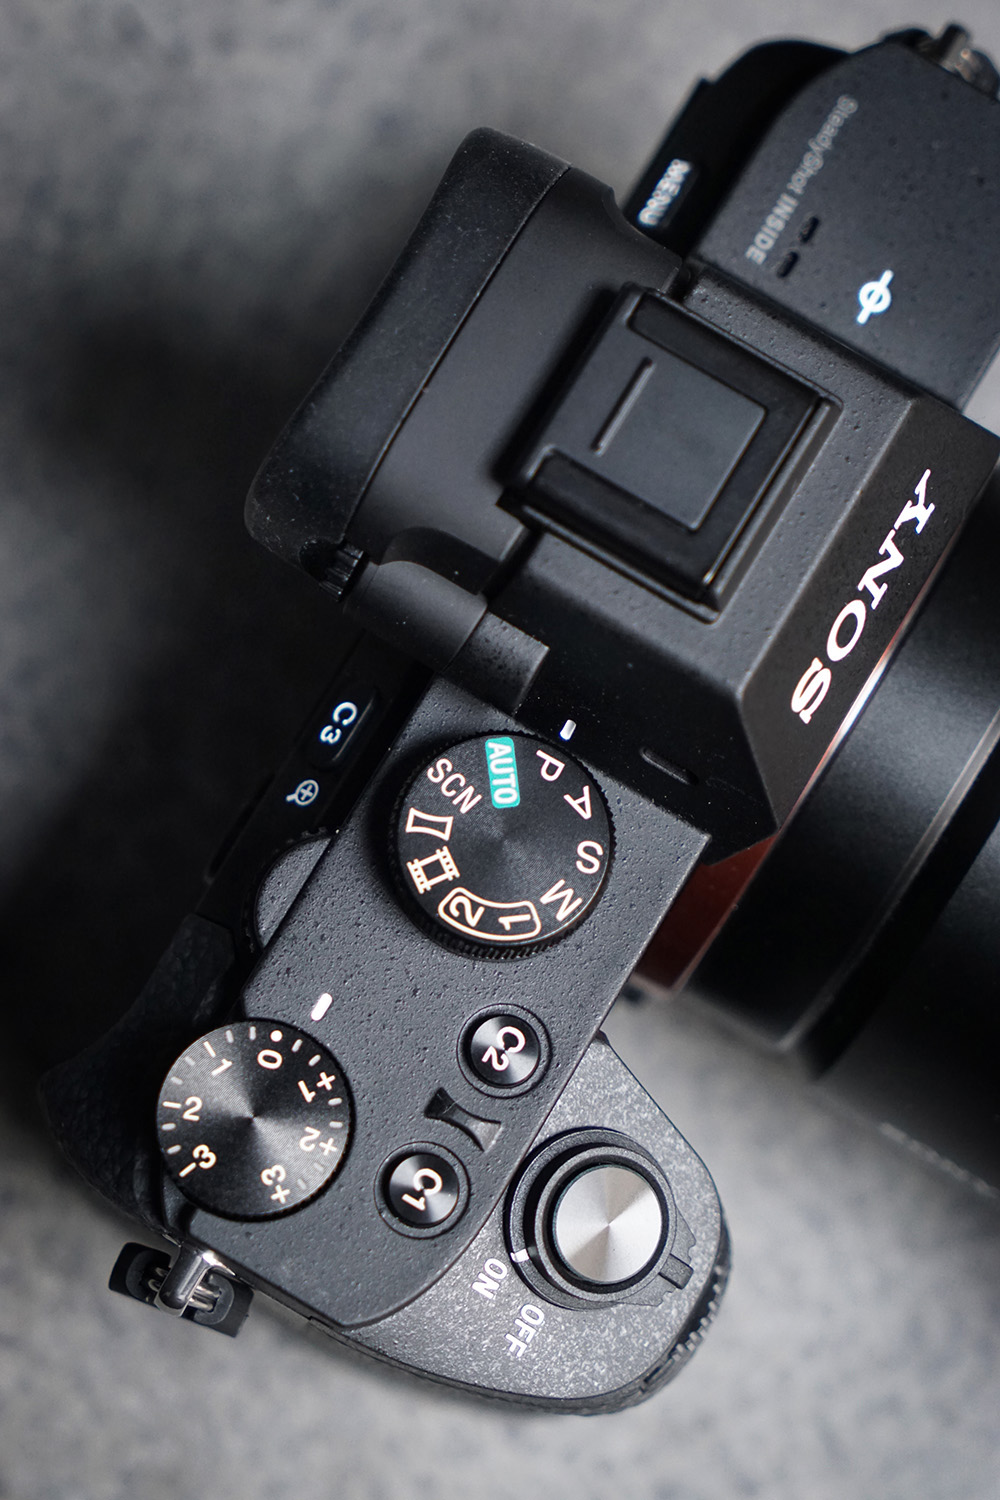 Sony's new A7II has a beefed up construction and a redesigned shutter release button and configuration, making it more comfortable and easy to grip.  Sony added an additional Custom button on the top and subsequently redesigned the accessory grip to match the new button layouts and design.  The camera weighs 100 grams more than the A7  and has reinforced the body with more magnesium alloy making it feel more rugged and durable.